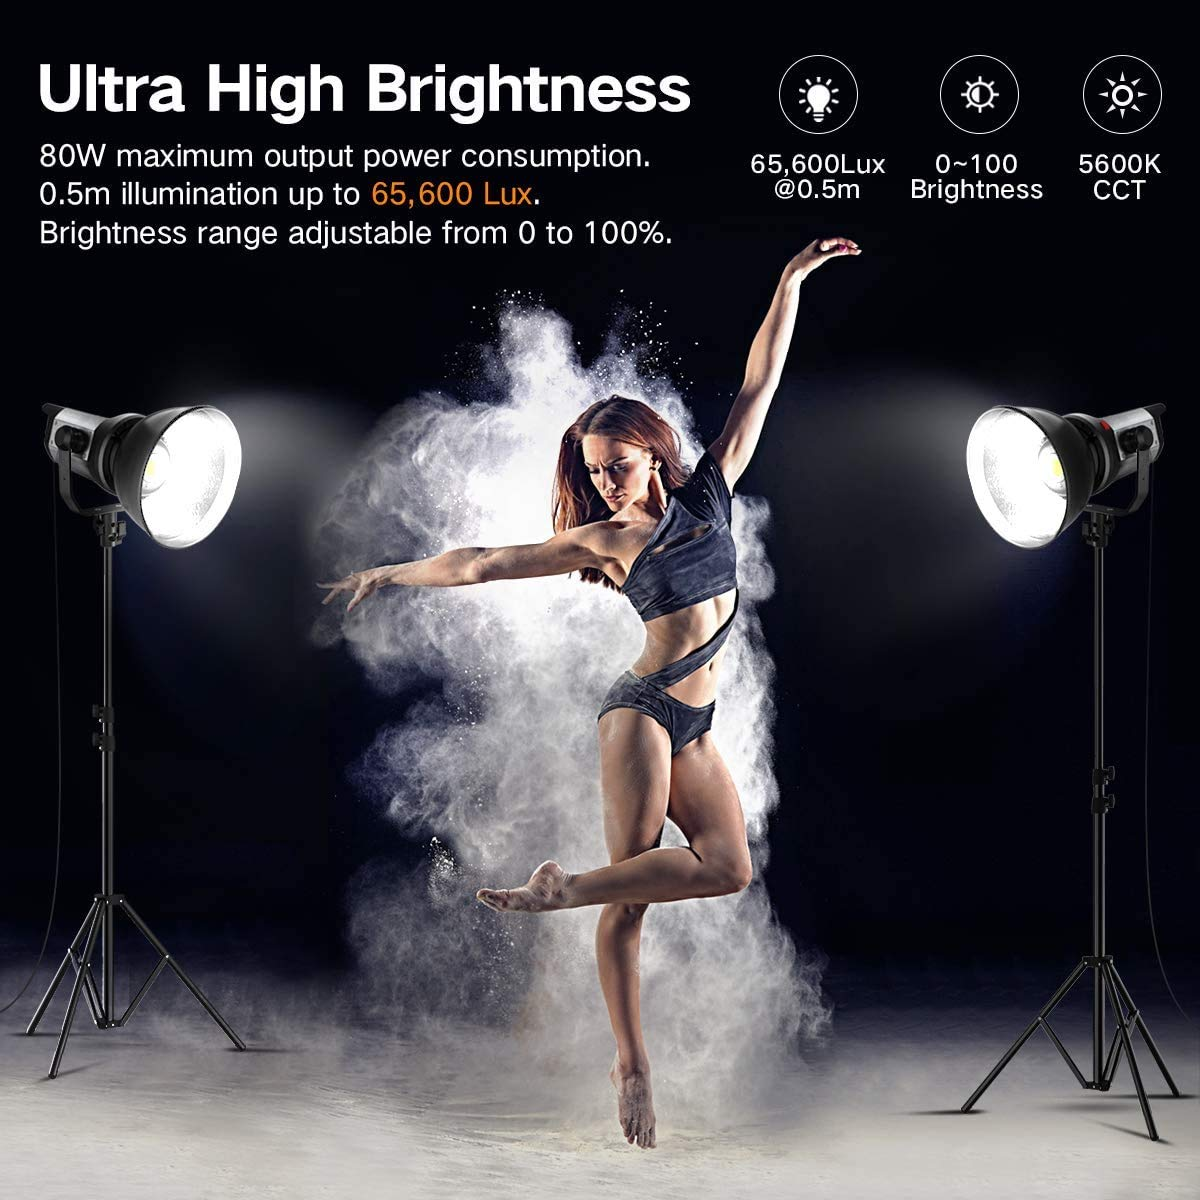 Bowens Mount Light Remote Control for YouTube Vlog Portrait Photography Lighting Studio Pixel 80W Continuous Output Lighting 5600K Daylight Balanced Dimmable LED Video Lamp Offers High Brightness